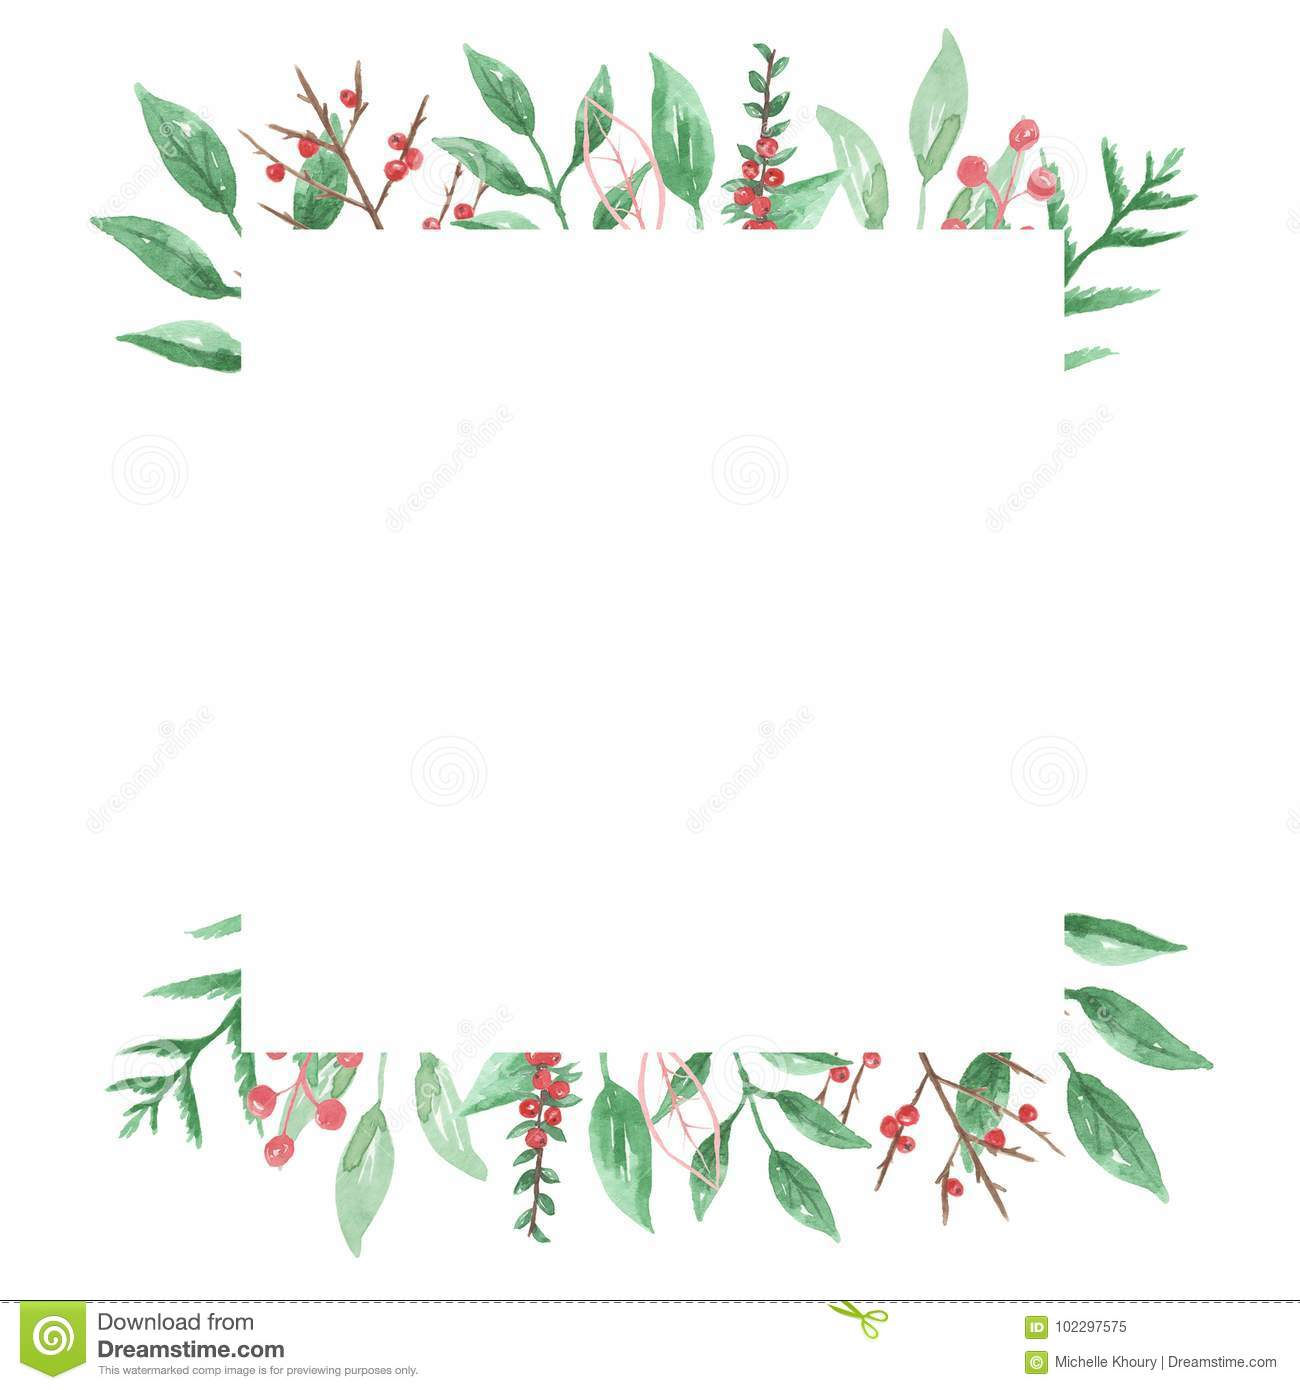 watercolor festive winter border holidays wreath holly christmas clip art borders free images christmas clip art borders free